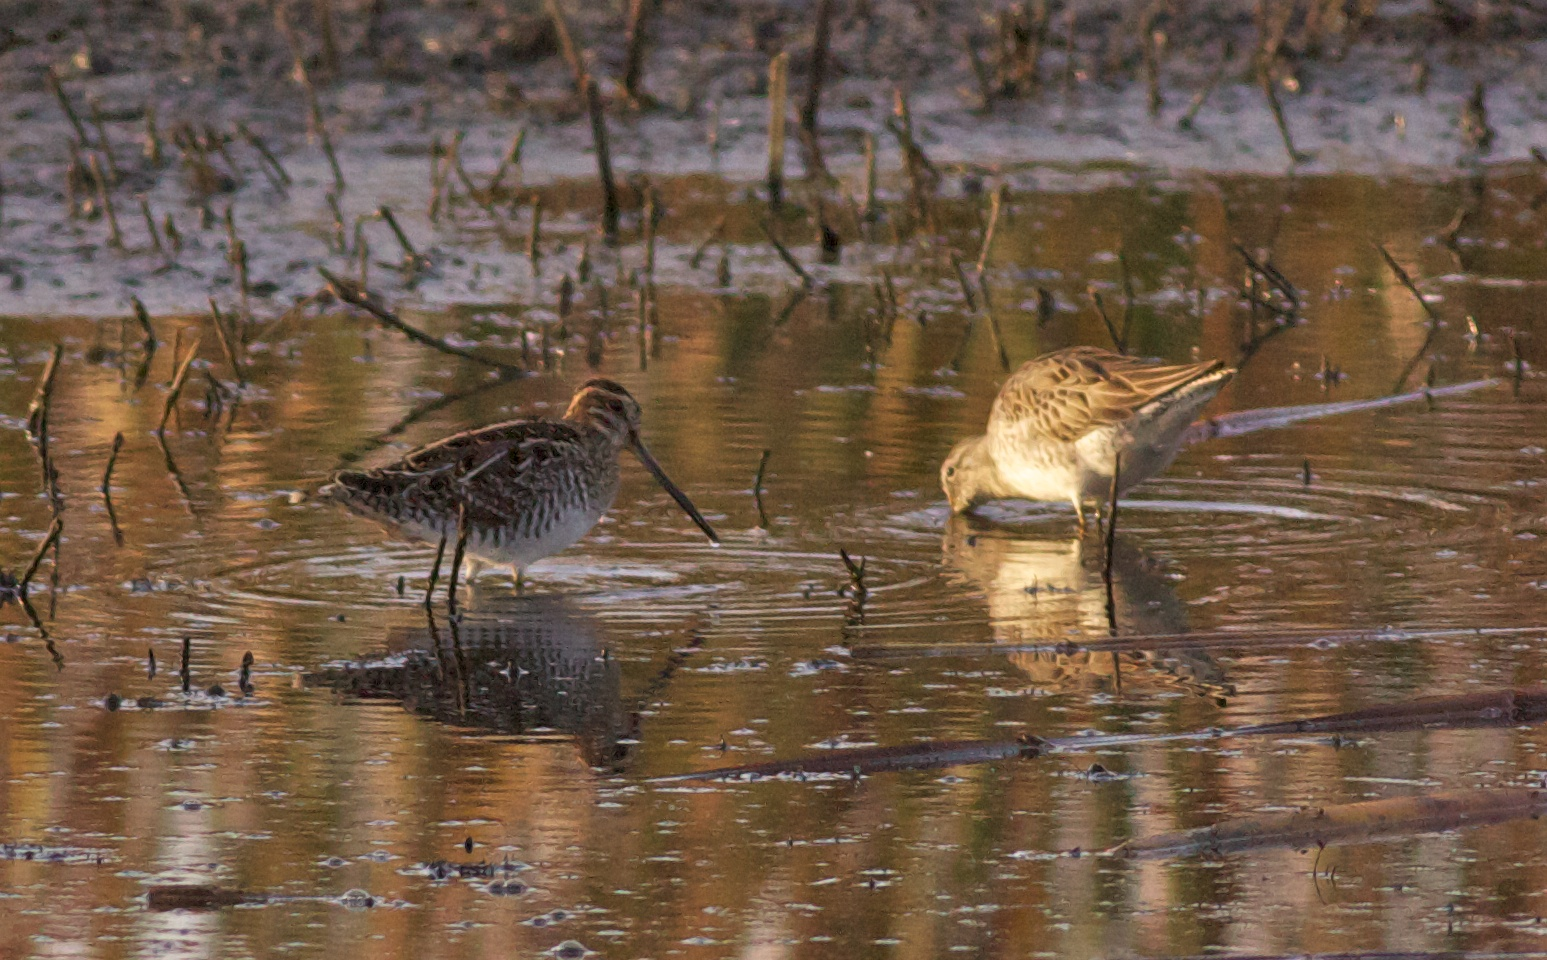 Two Wilson's snipes stand in shallow wetlands, one with just its long beak underwater rooting for bugs. Photo by Arlene Koziol